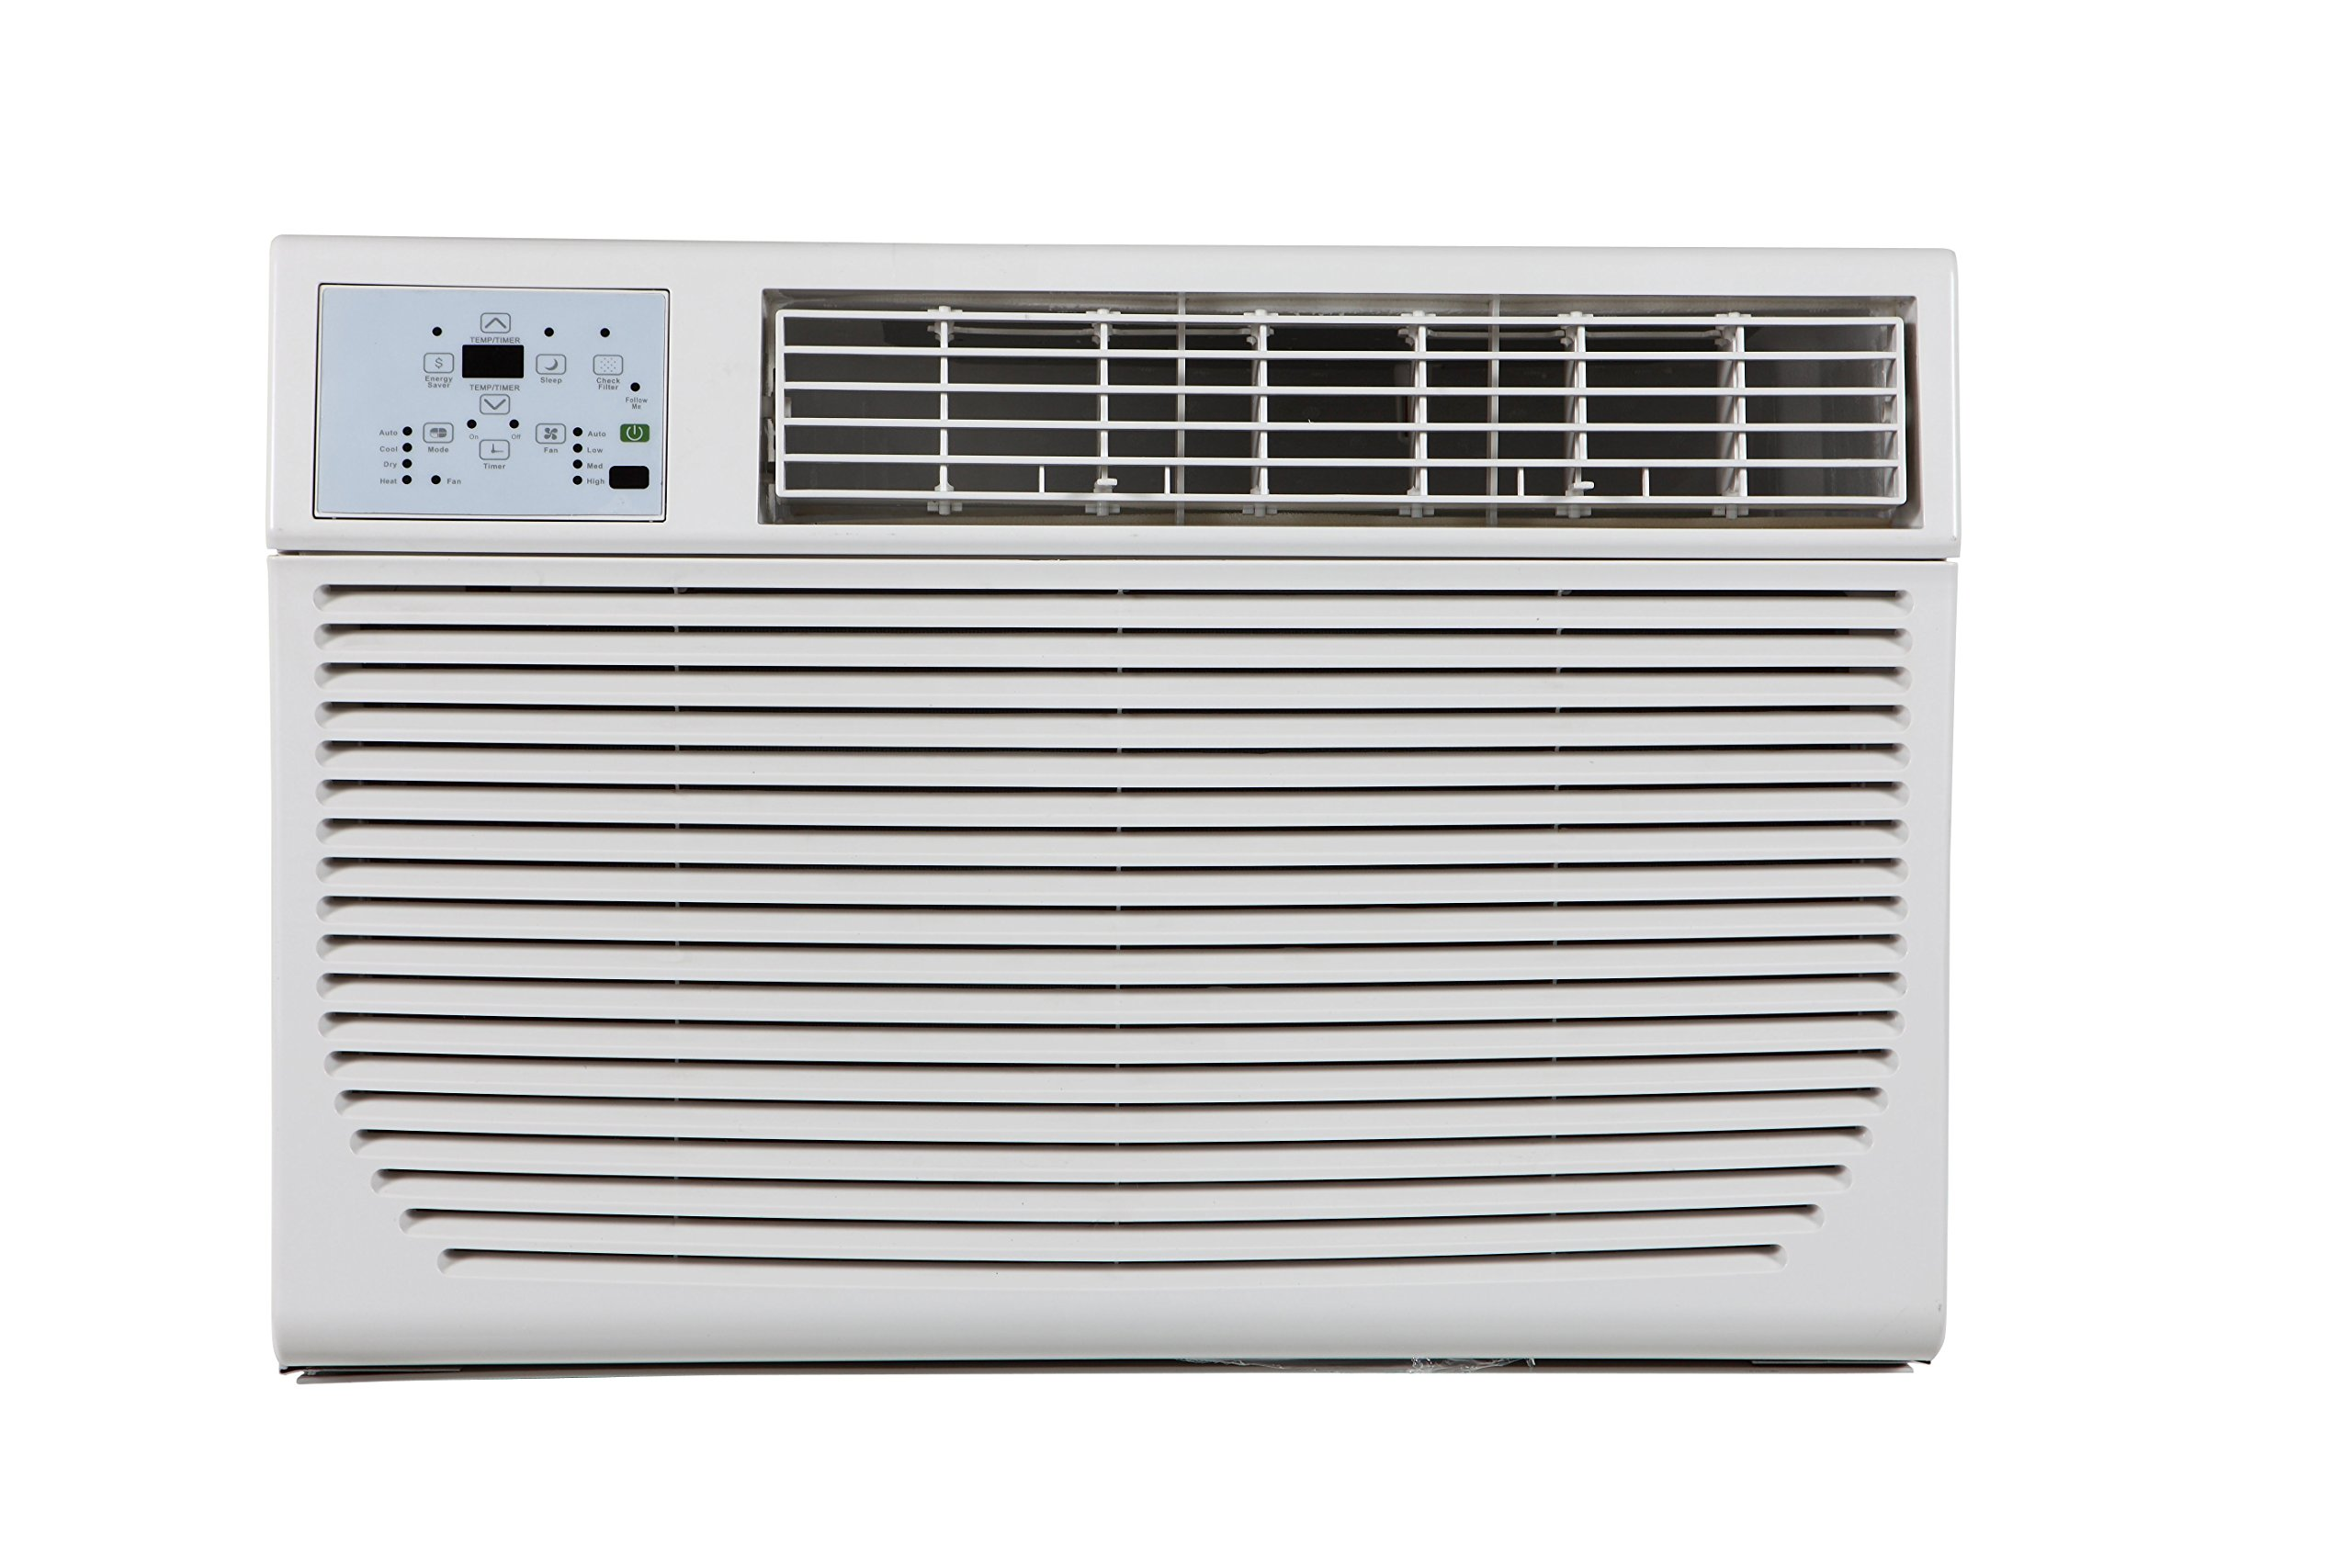 Impecca 10,000 BTU 230V Electronic Controlled Through The Wall Air Conditioner with Remote, h, 6-15P/220 by Impecca